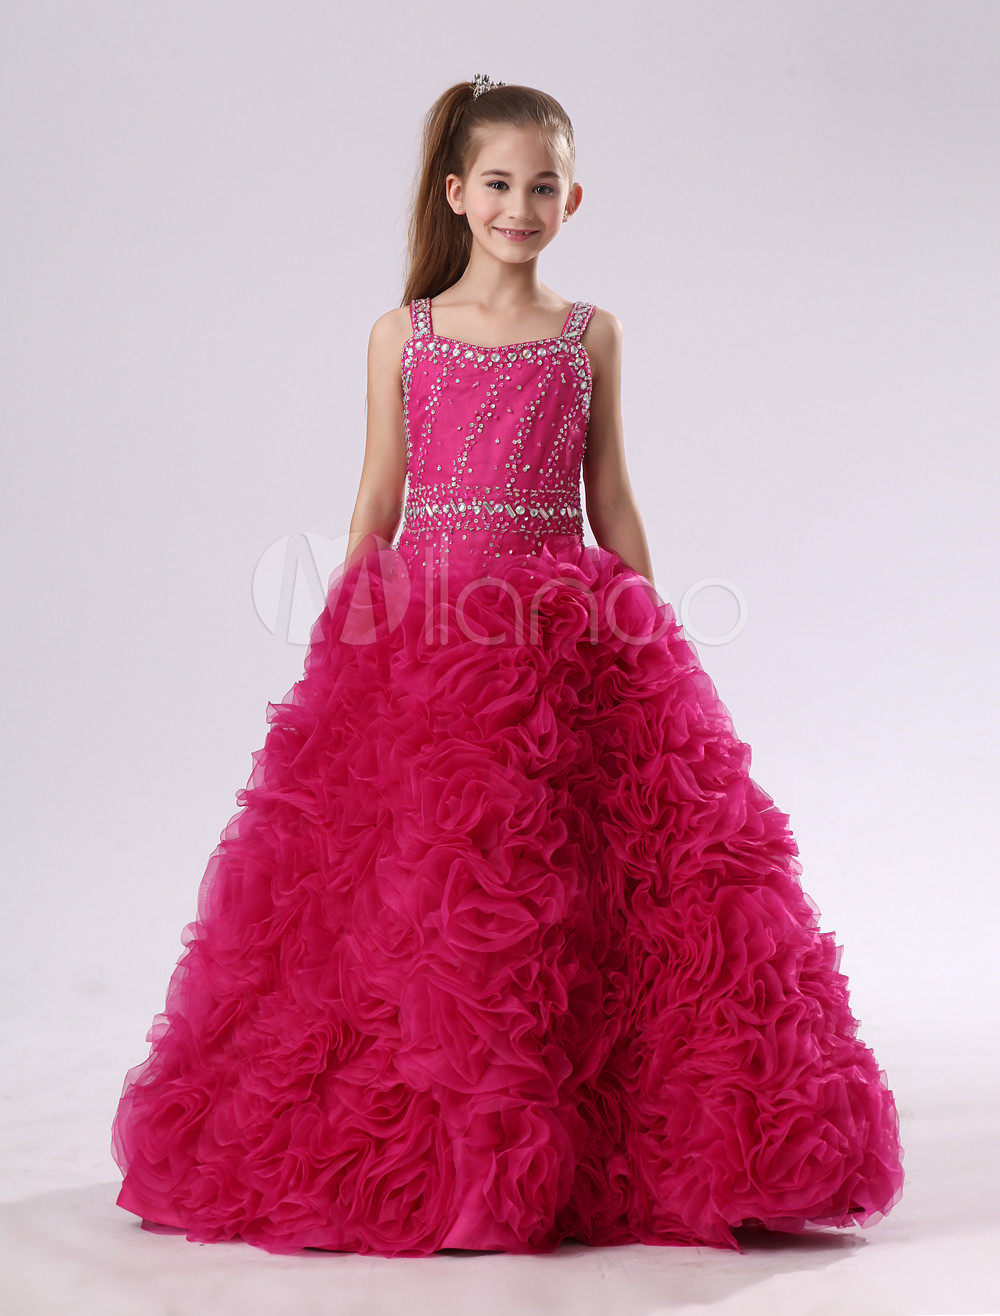 Organza Flower Girl Dress Ball Gown Hot Pink Spaghetti Straps Beading Floor Length Pageant Dress